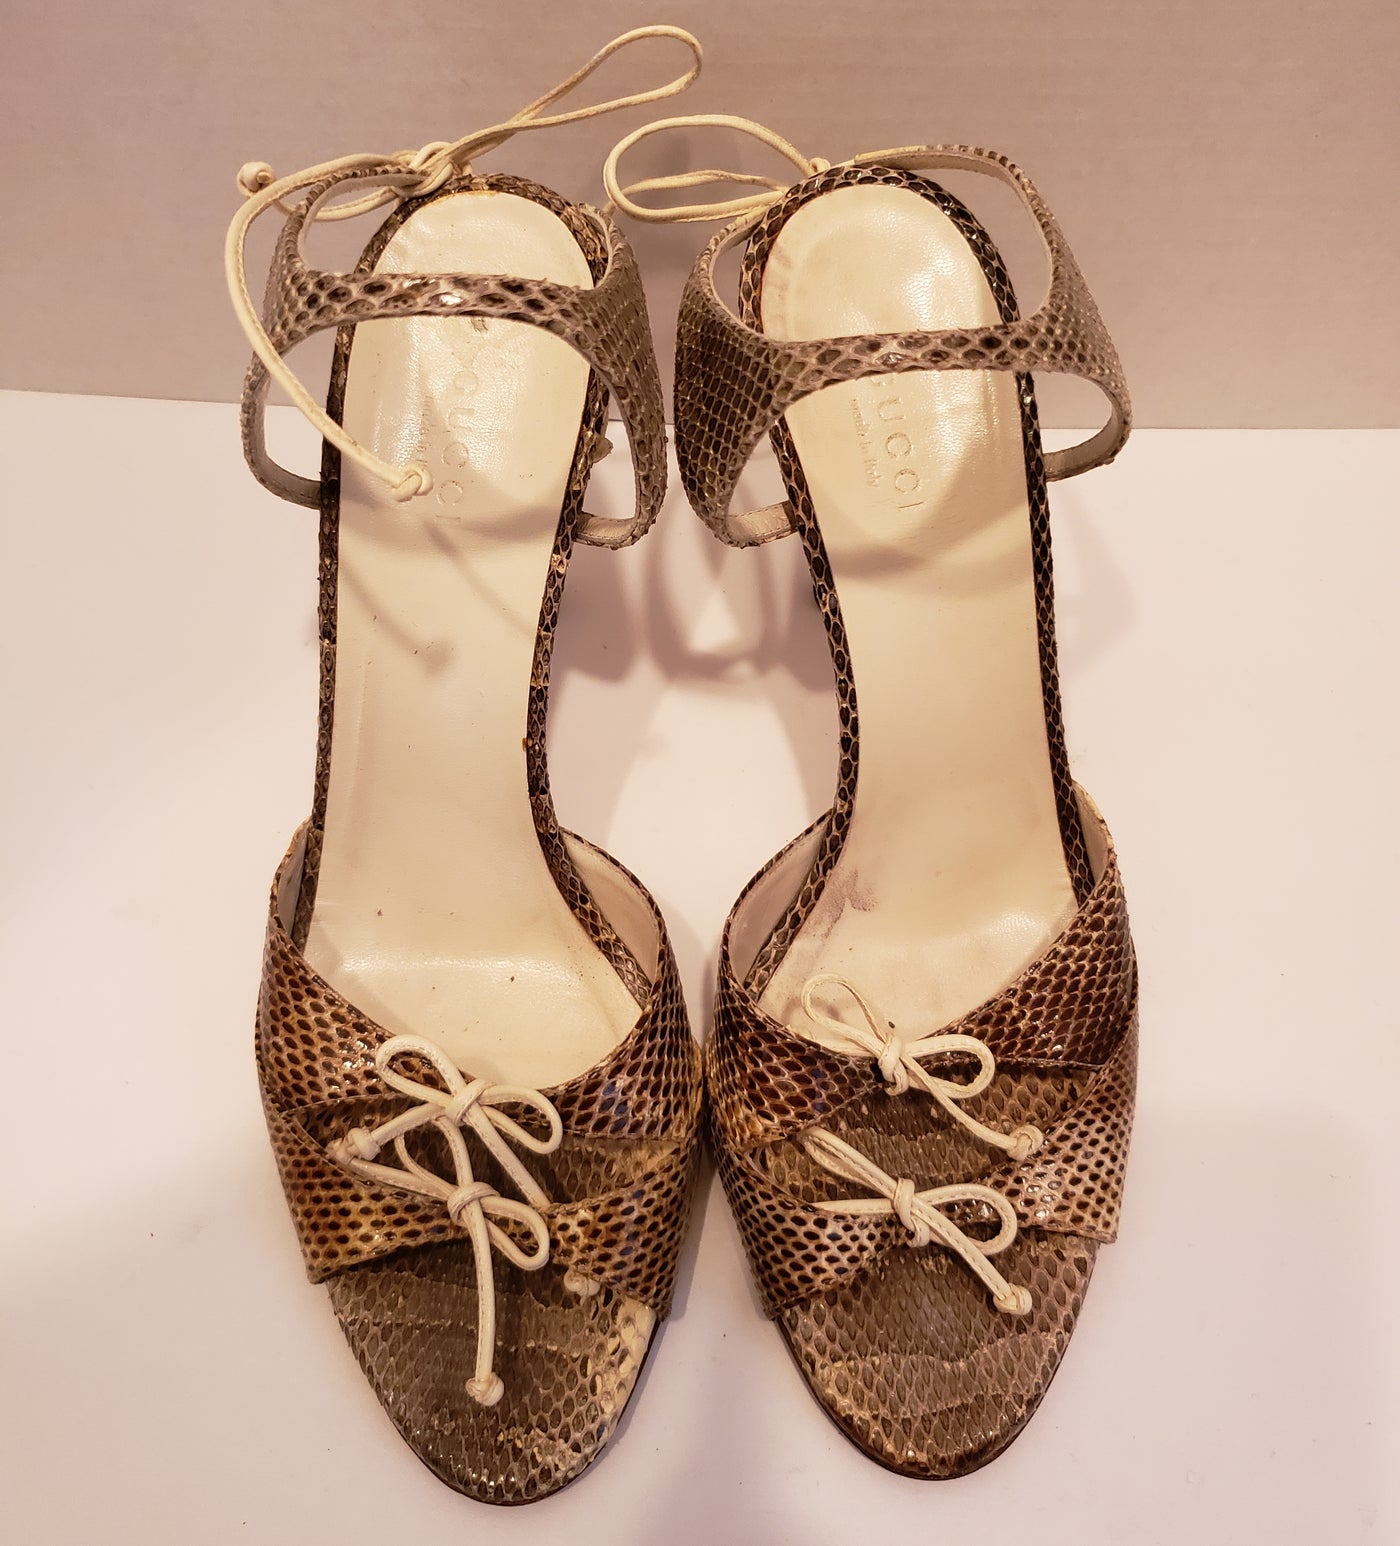 f3485613406 Gucci Snakeskin Sandals Size 8B – Shop The Thrifty Fashionista